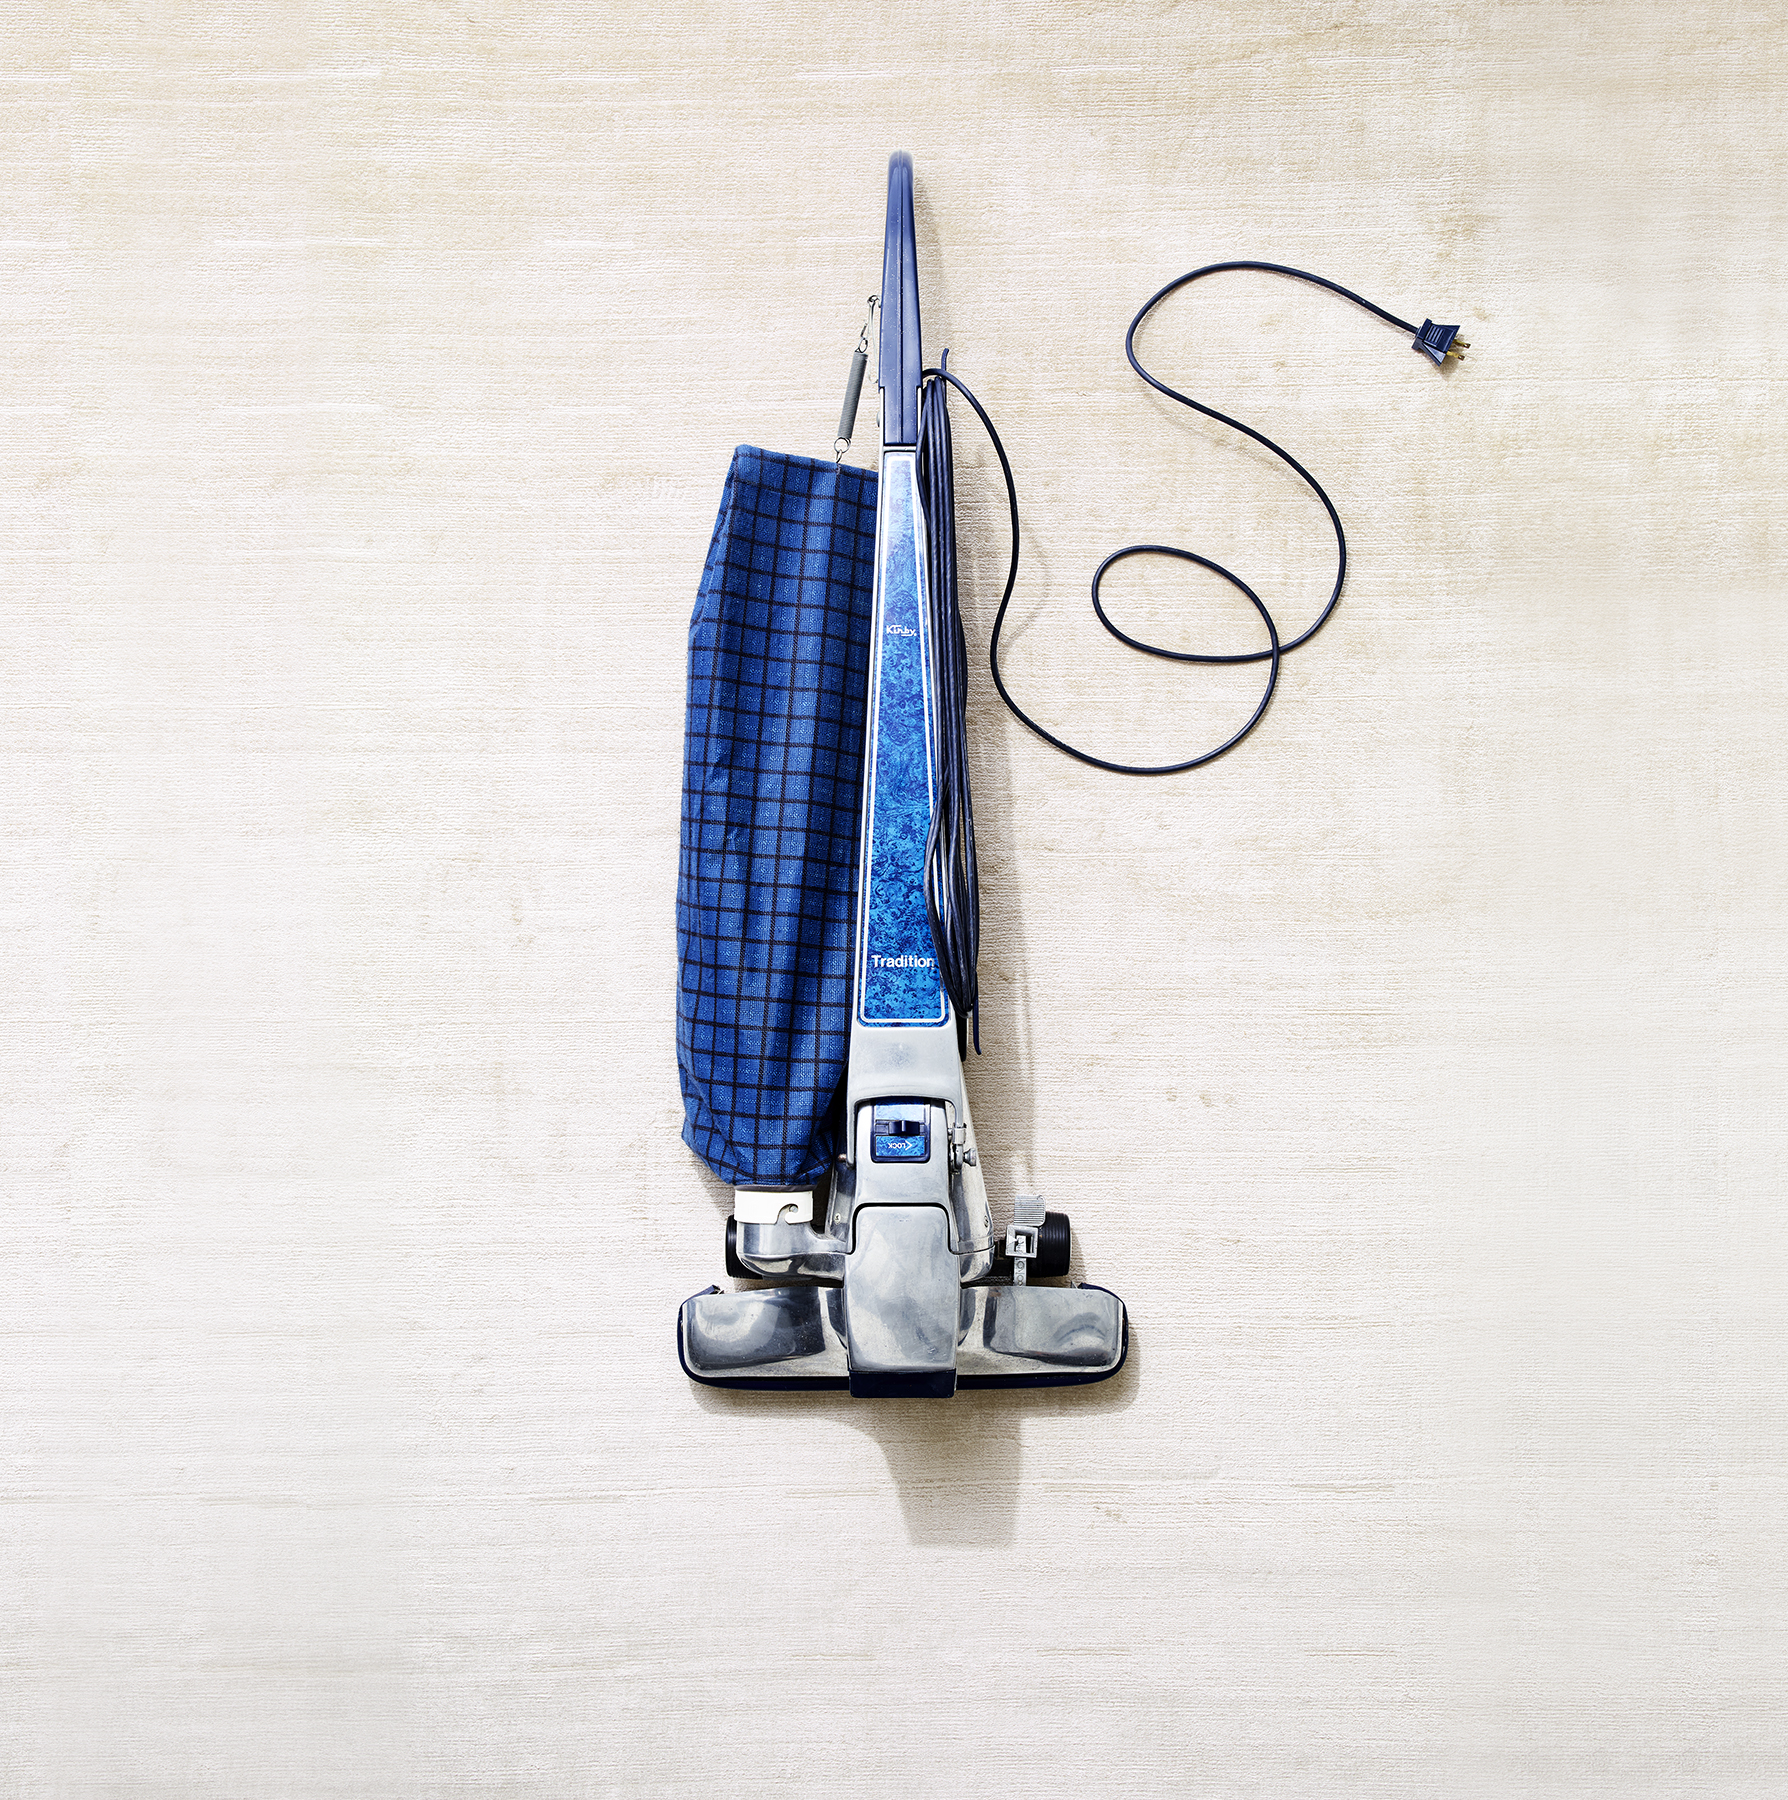 Blue upright vacuum cleaner